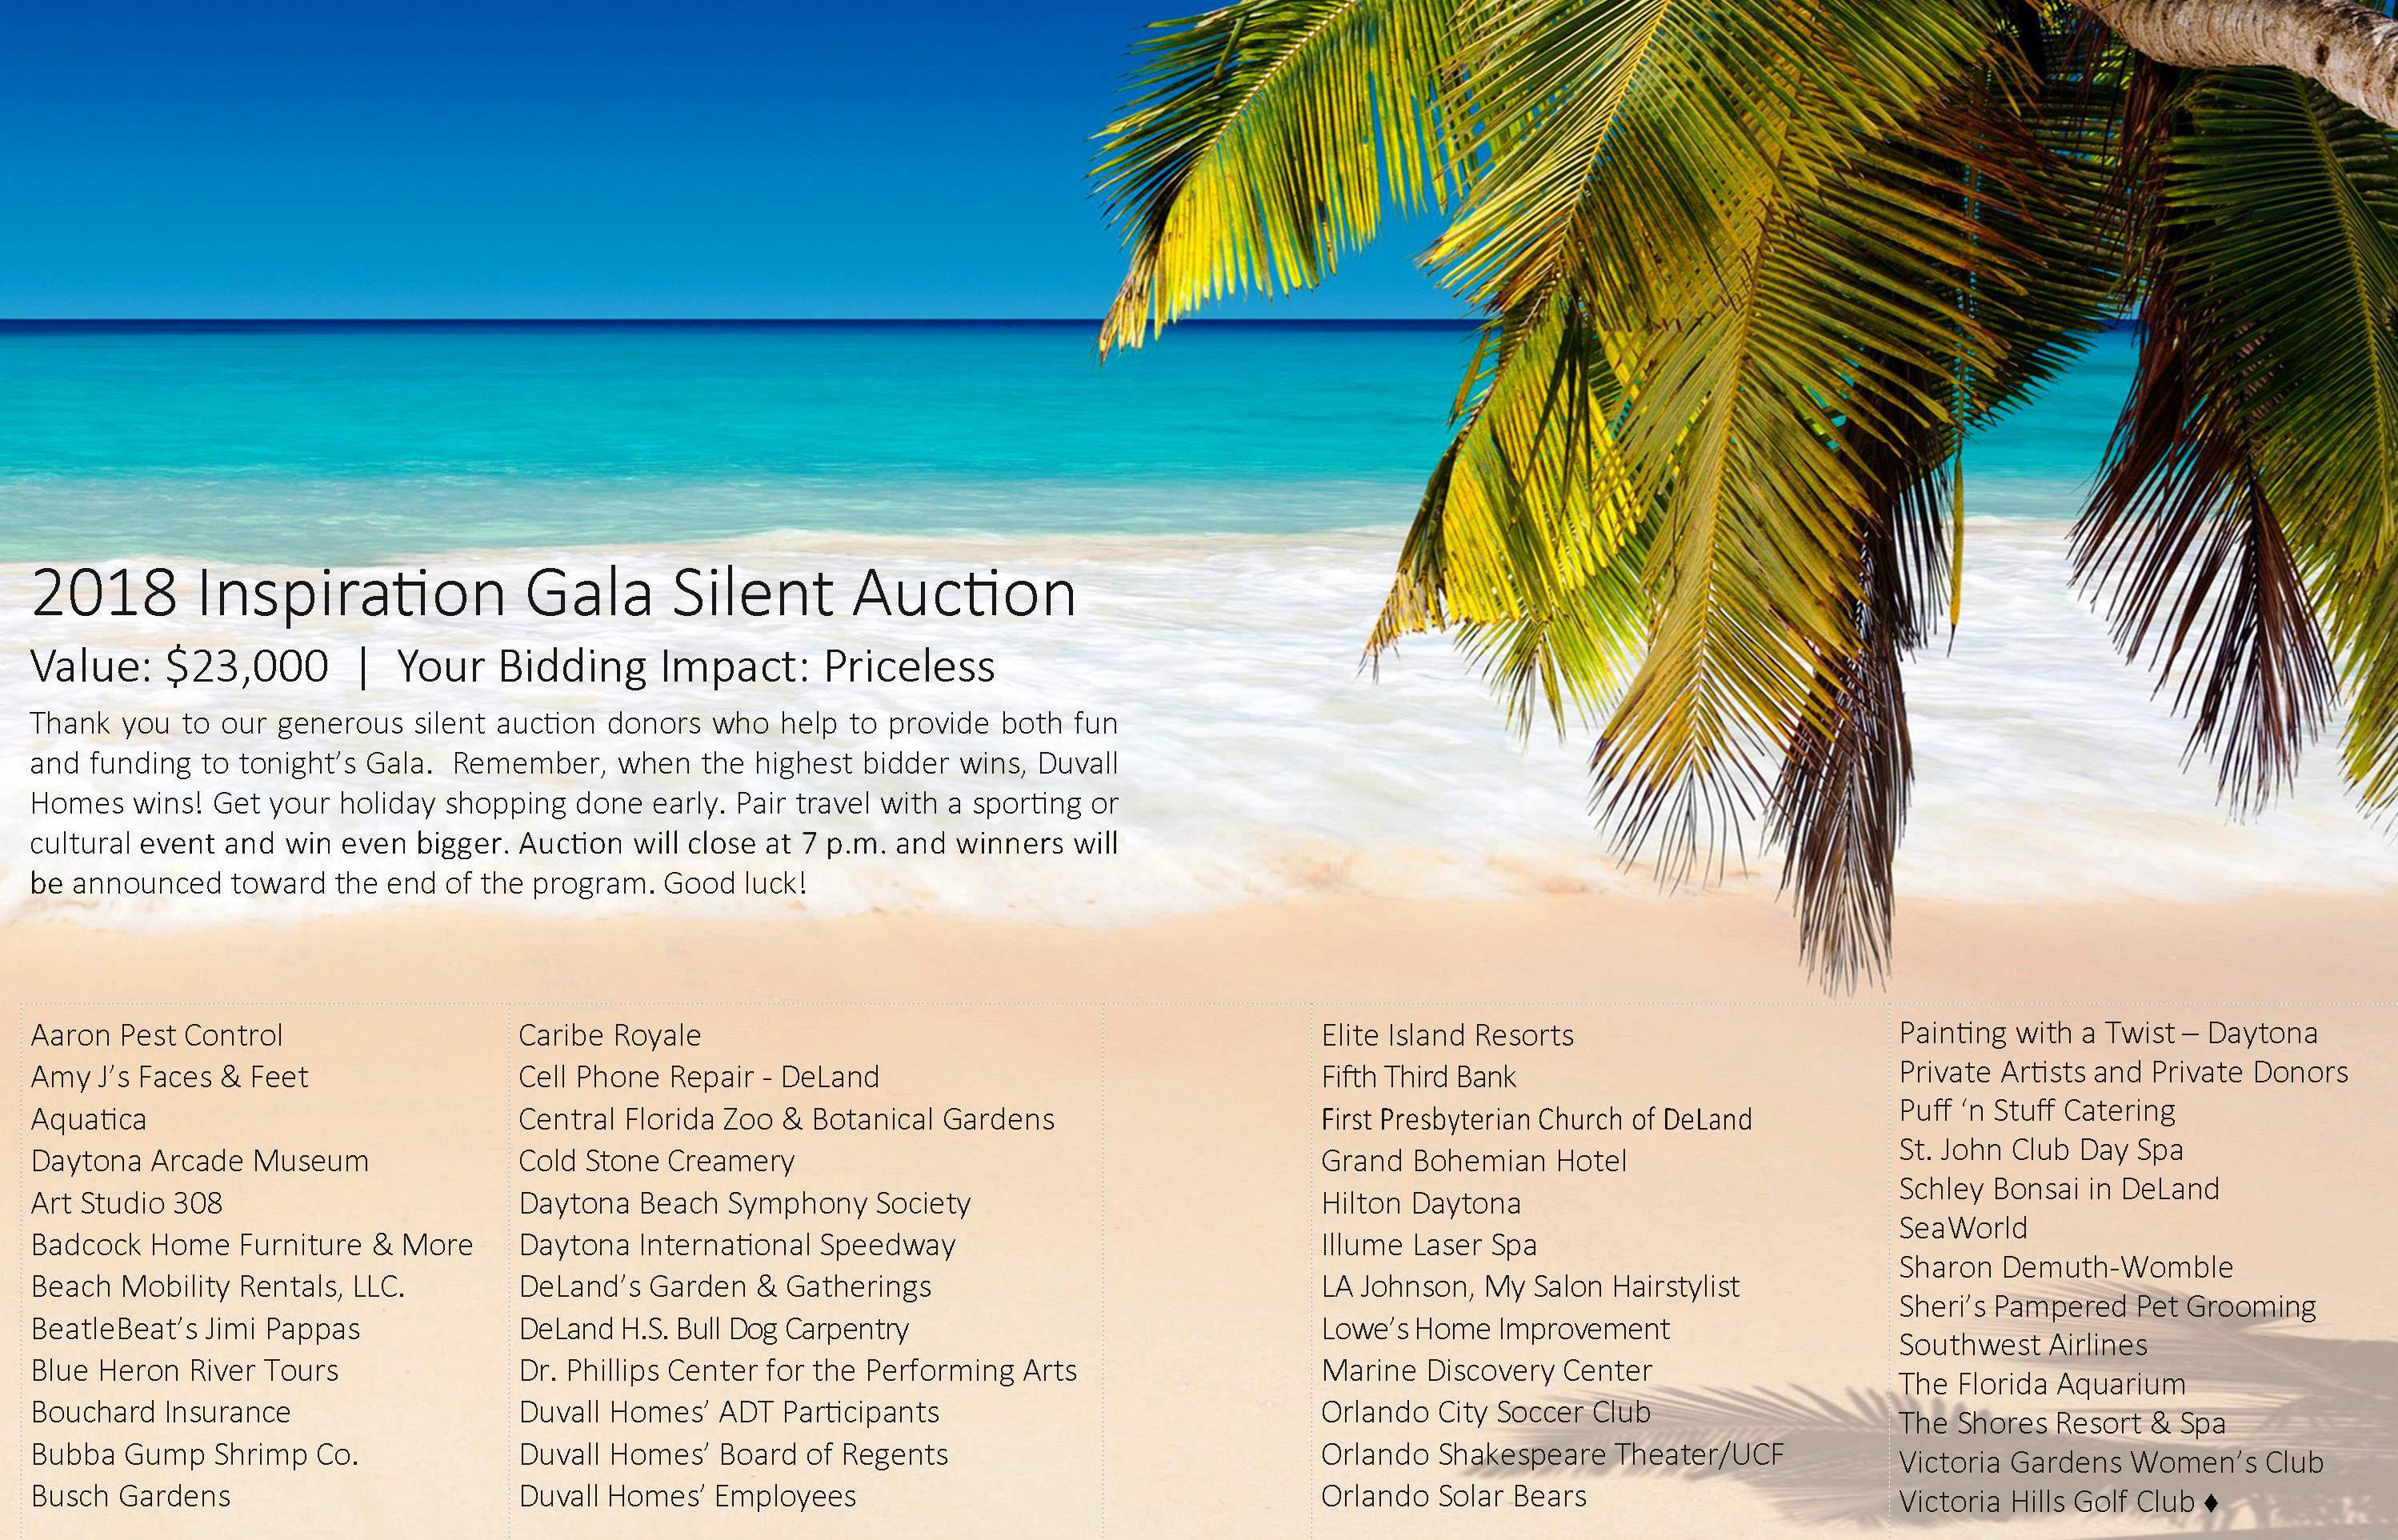 Thank you 2018 Inspiration Gala Silent Auction Donors